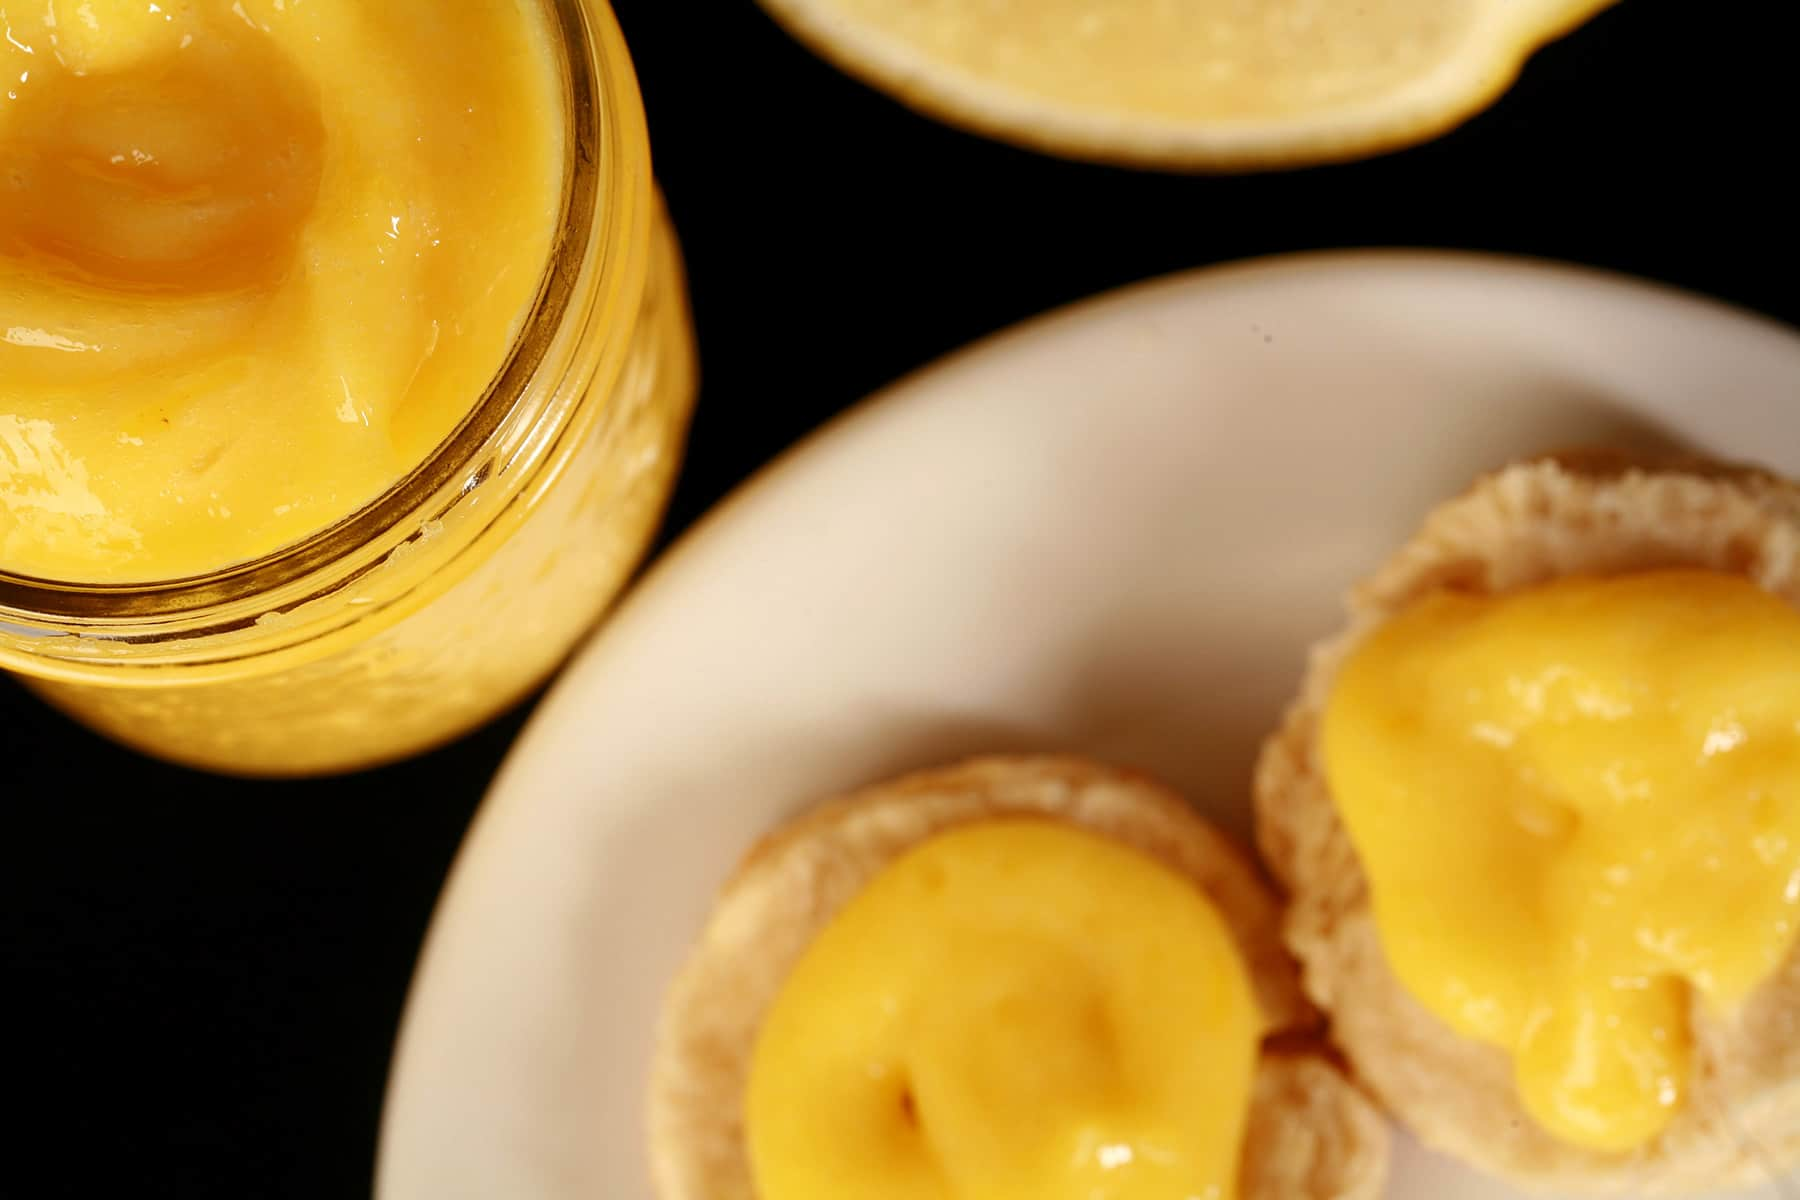 A jam jar of lemon curd on a plate, along with 2 biscuits topped with curd.